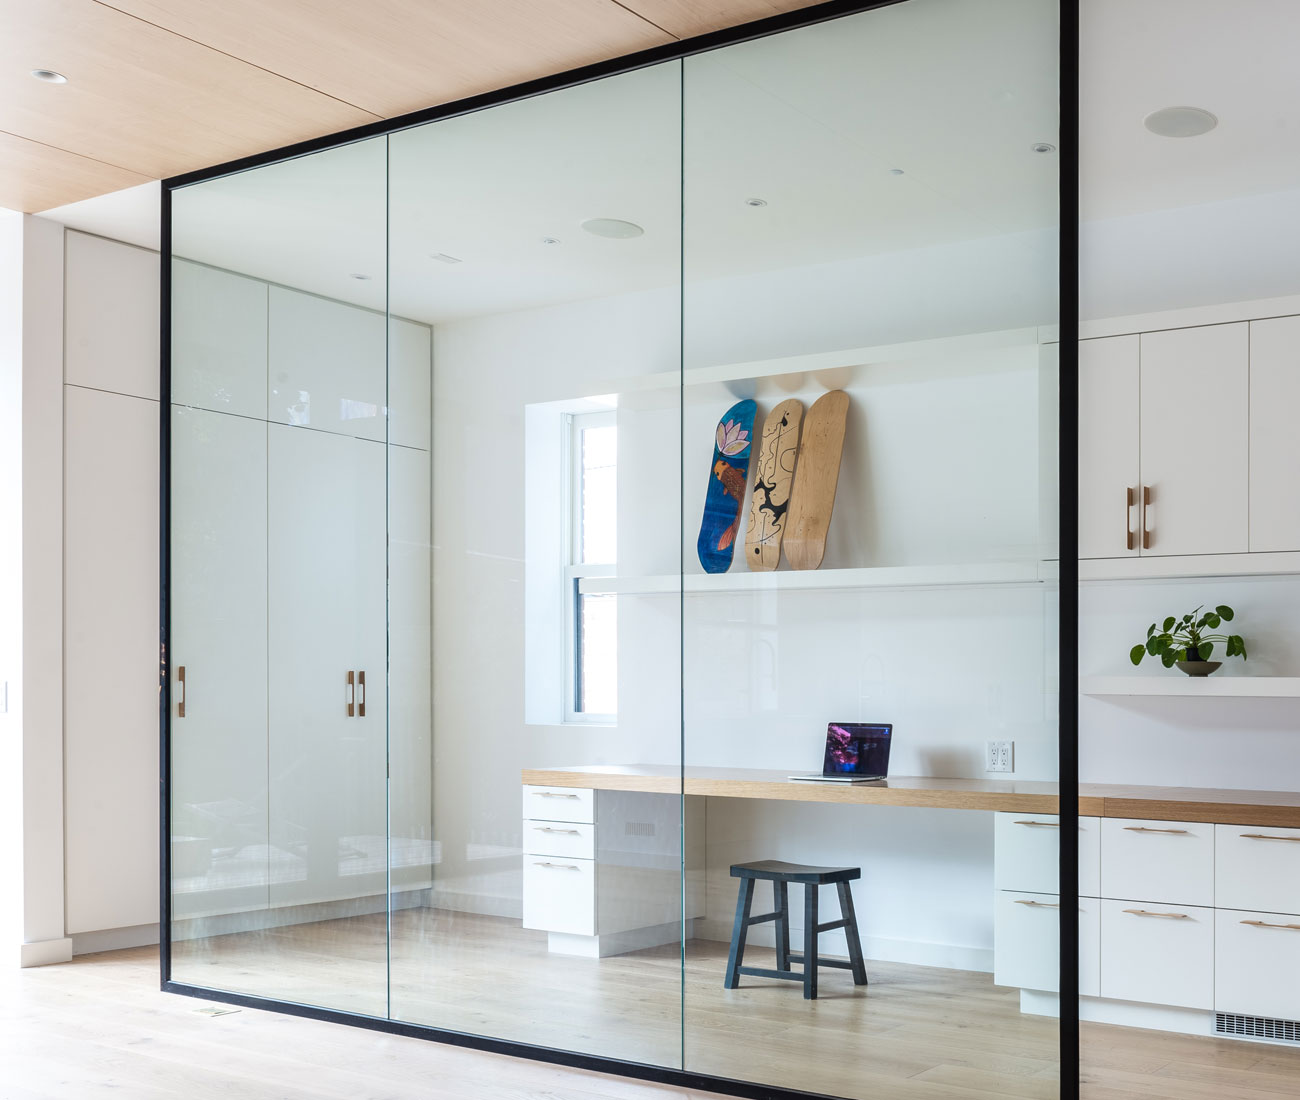 The a light-drenched studio faces the kitchen.